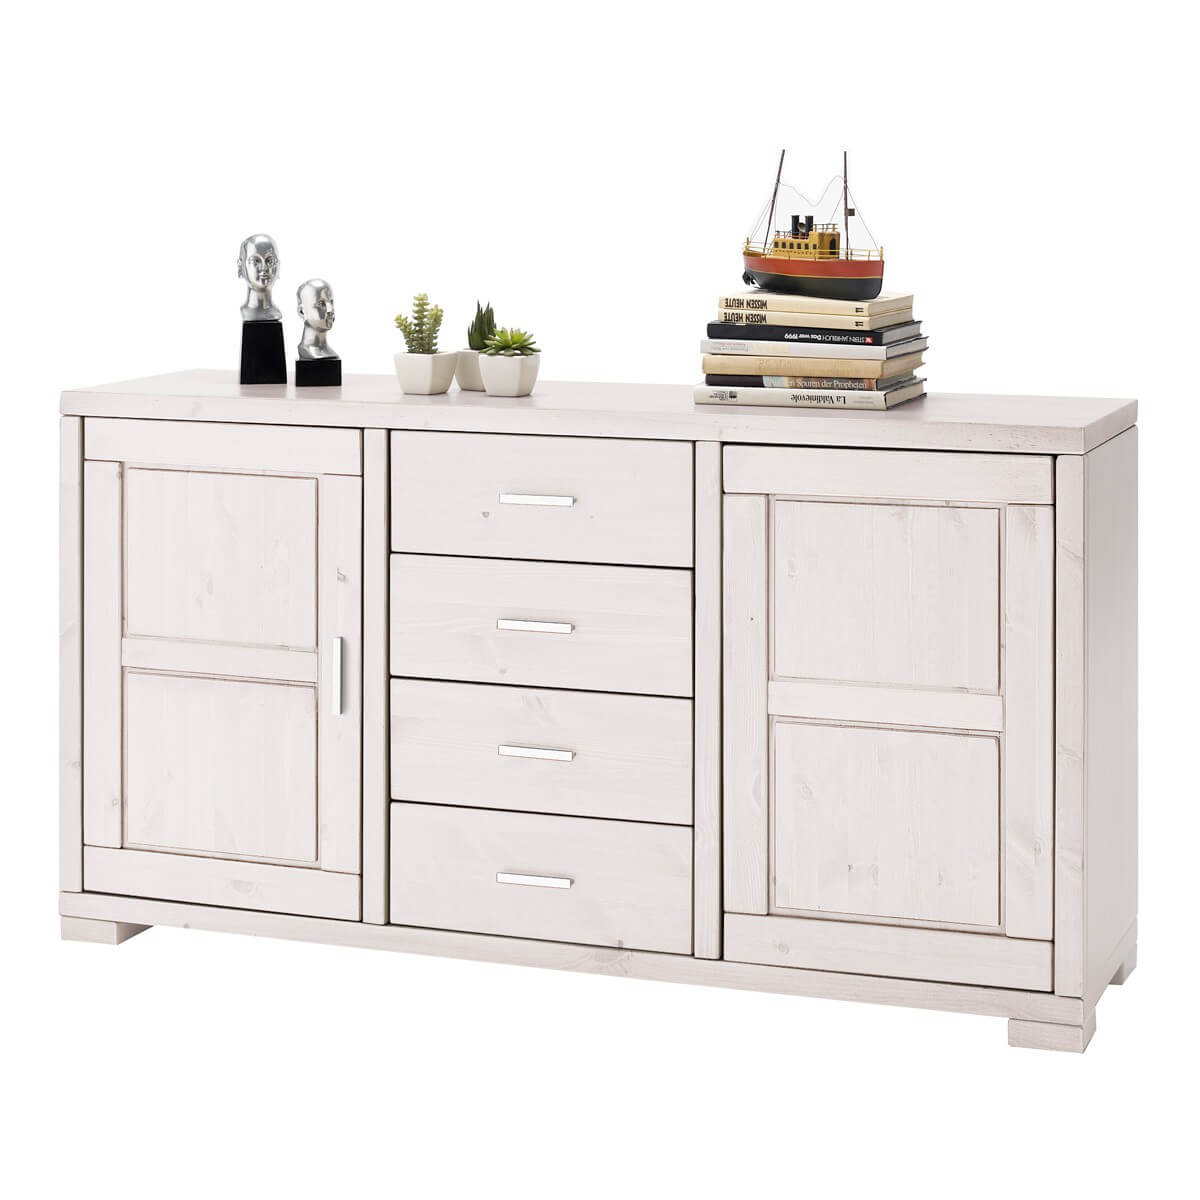 Sideboard madison in kiefer massivholz wei for Sideboard kiefer